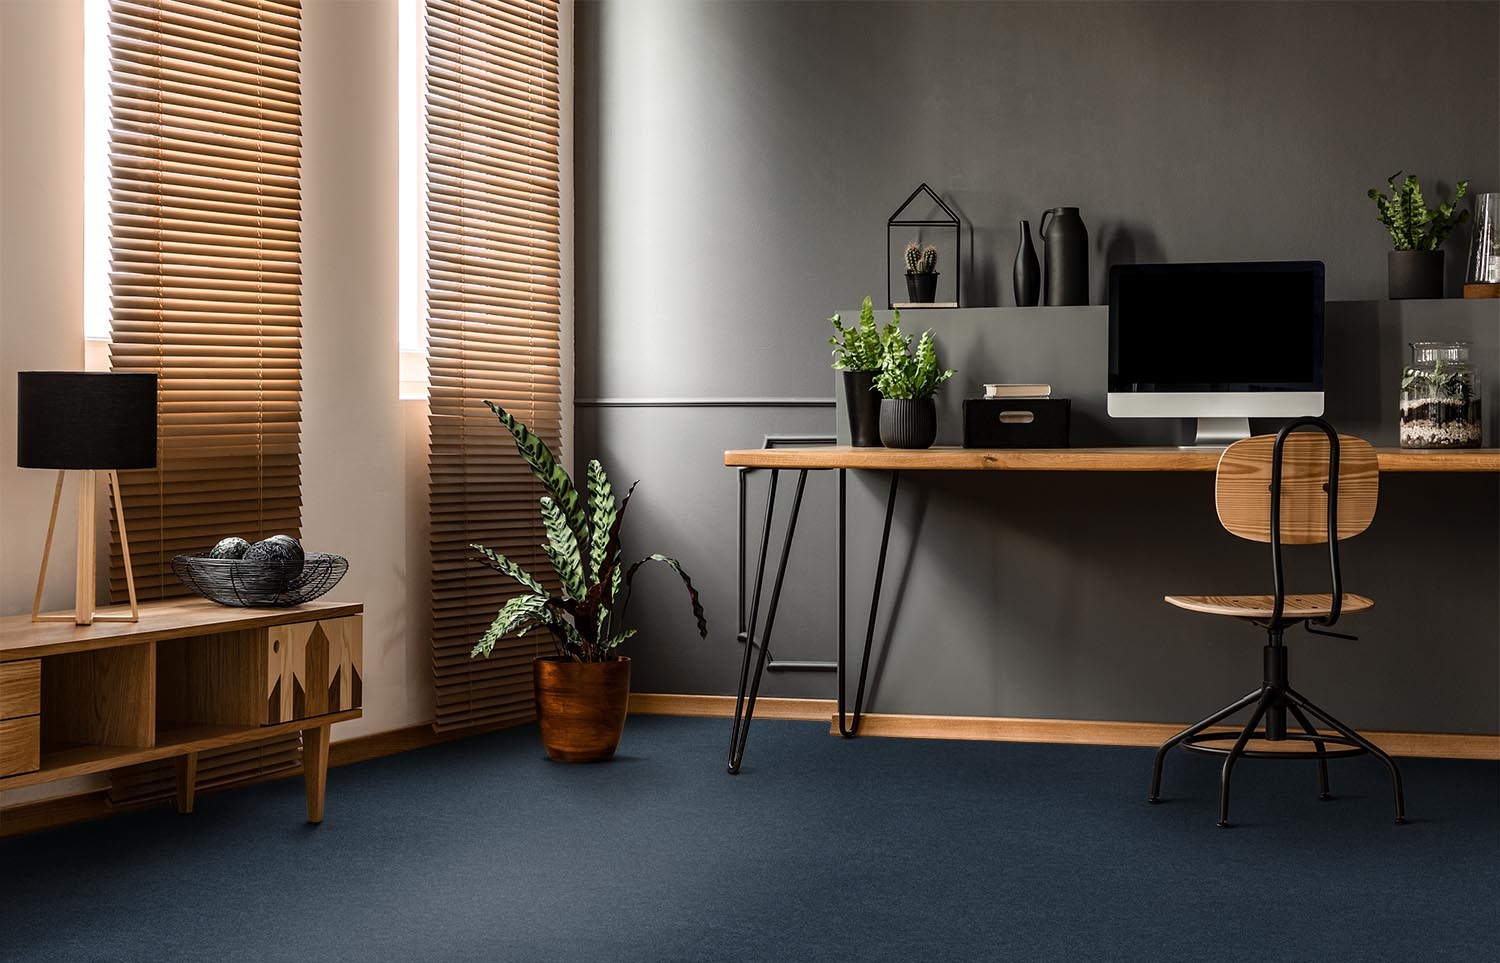 Softology - S201 - Suave home office